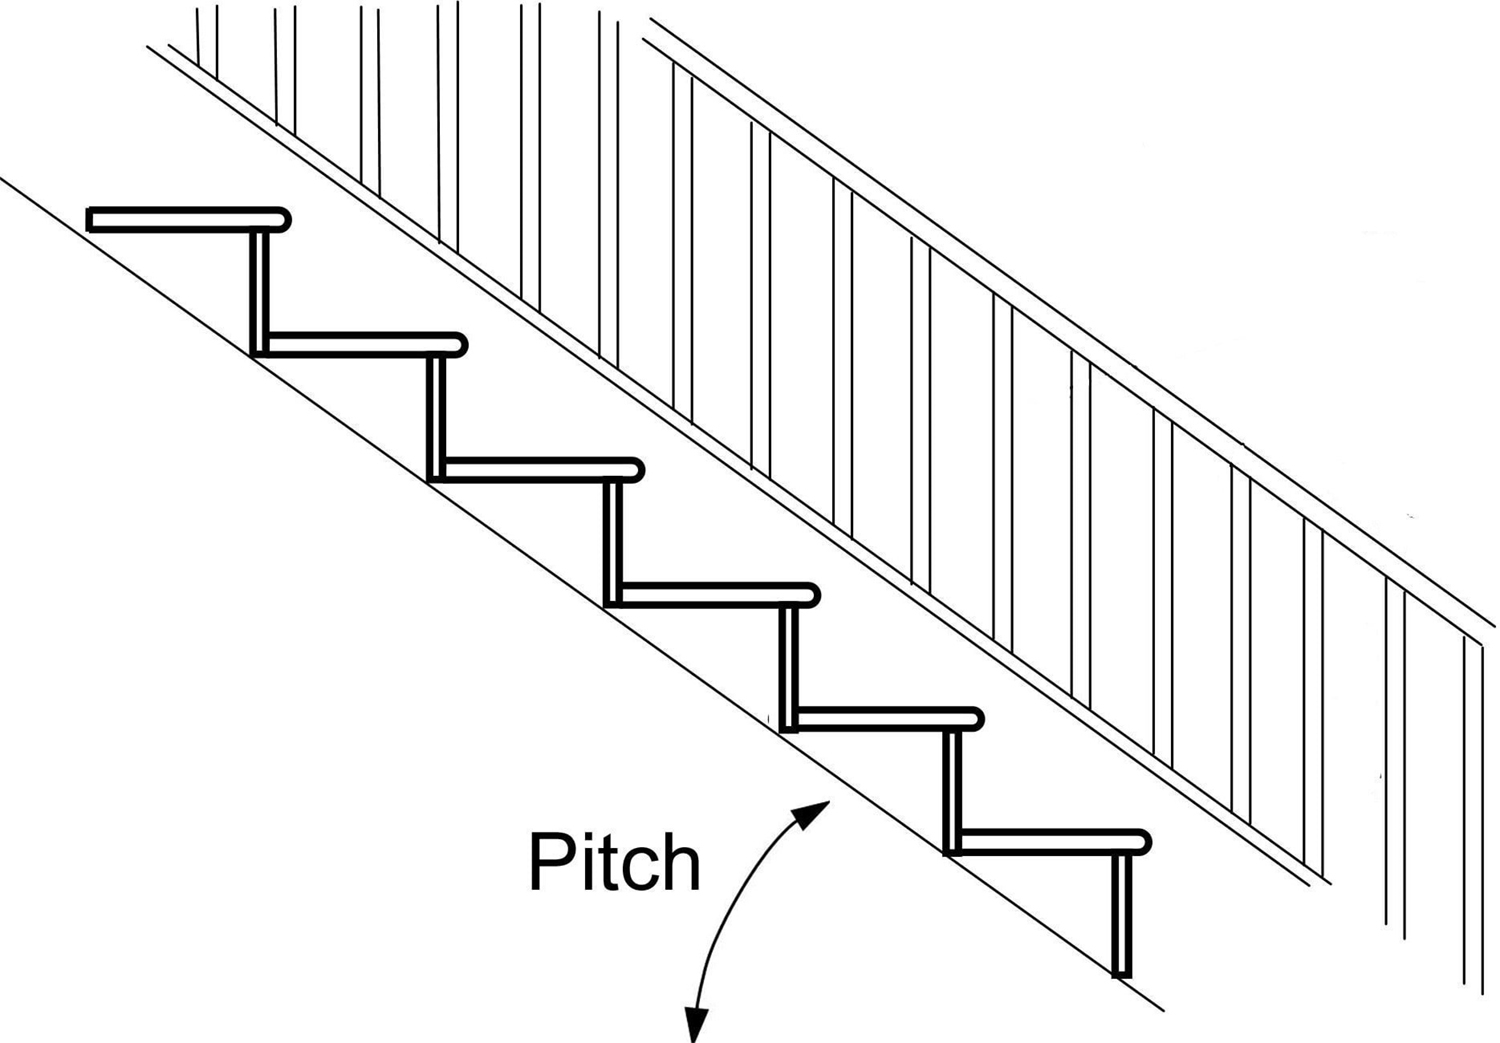 uk staircase pitch regulations, staircase pitch